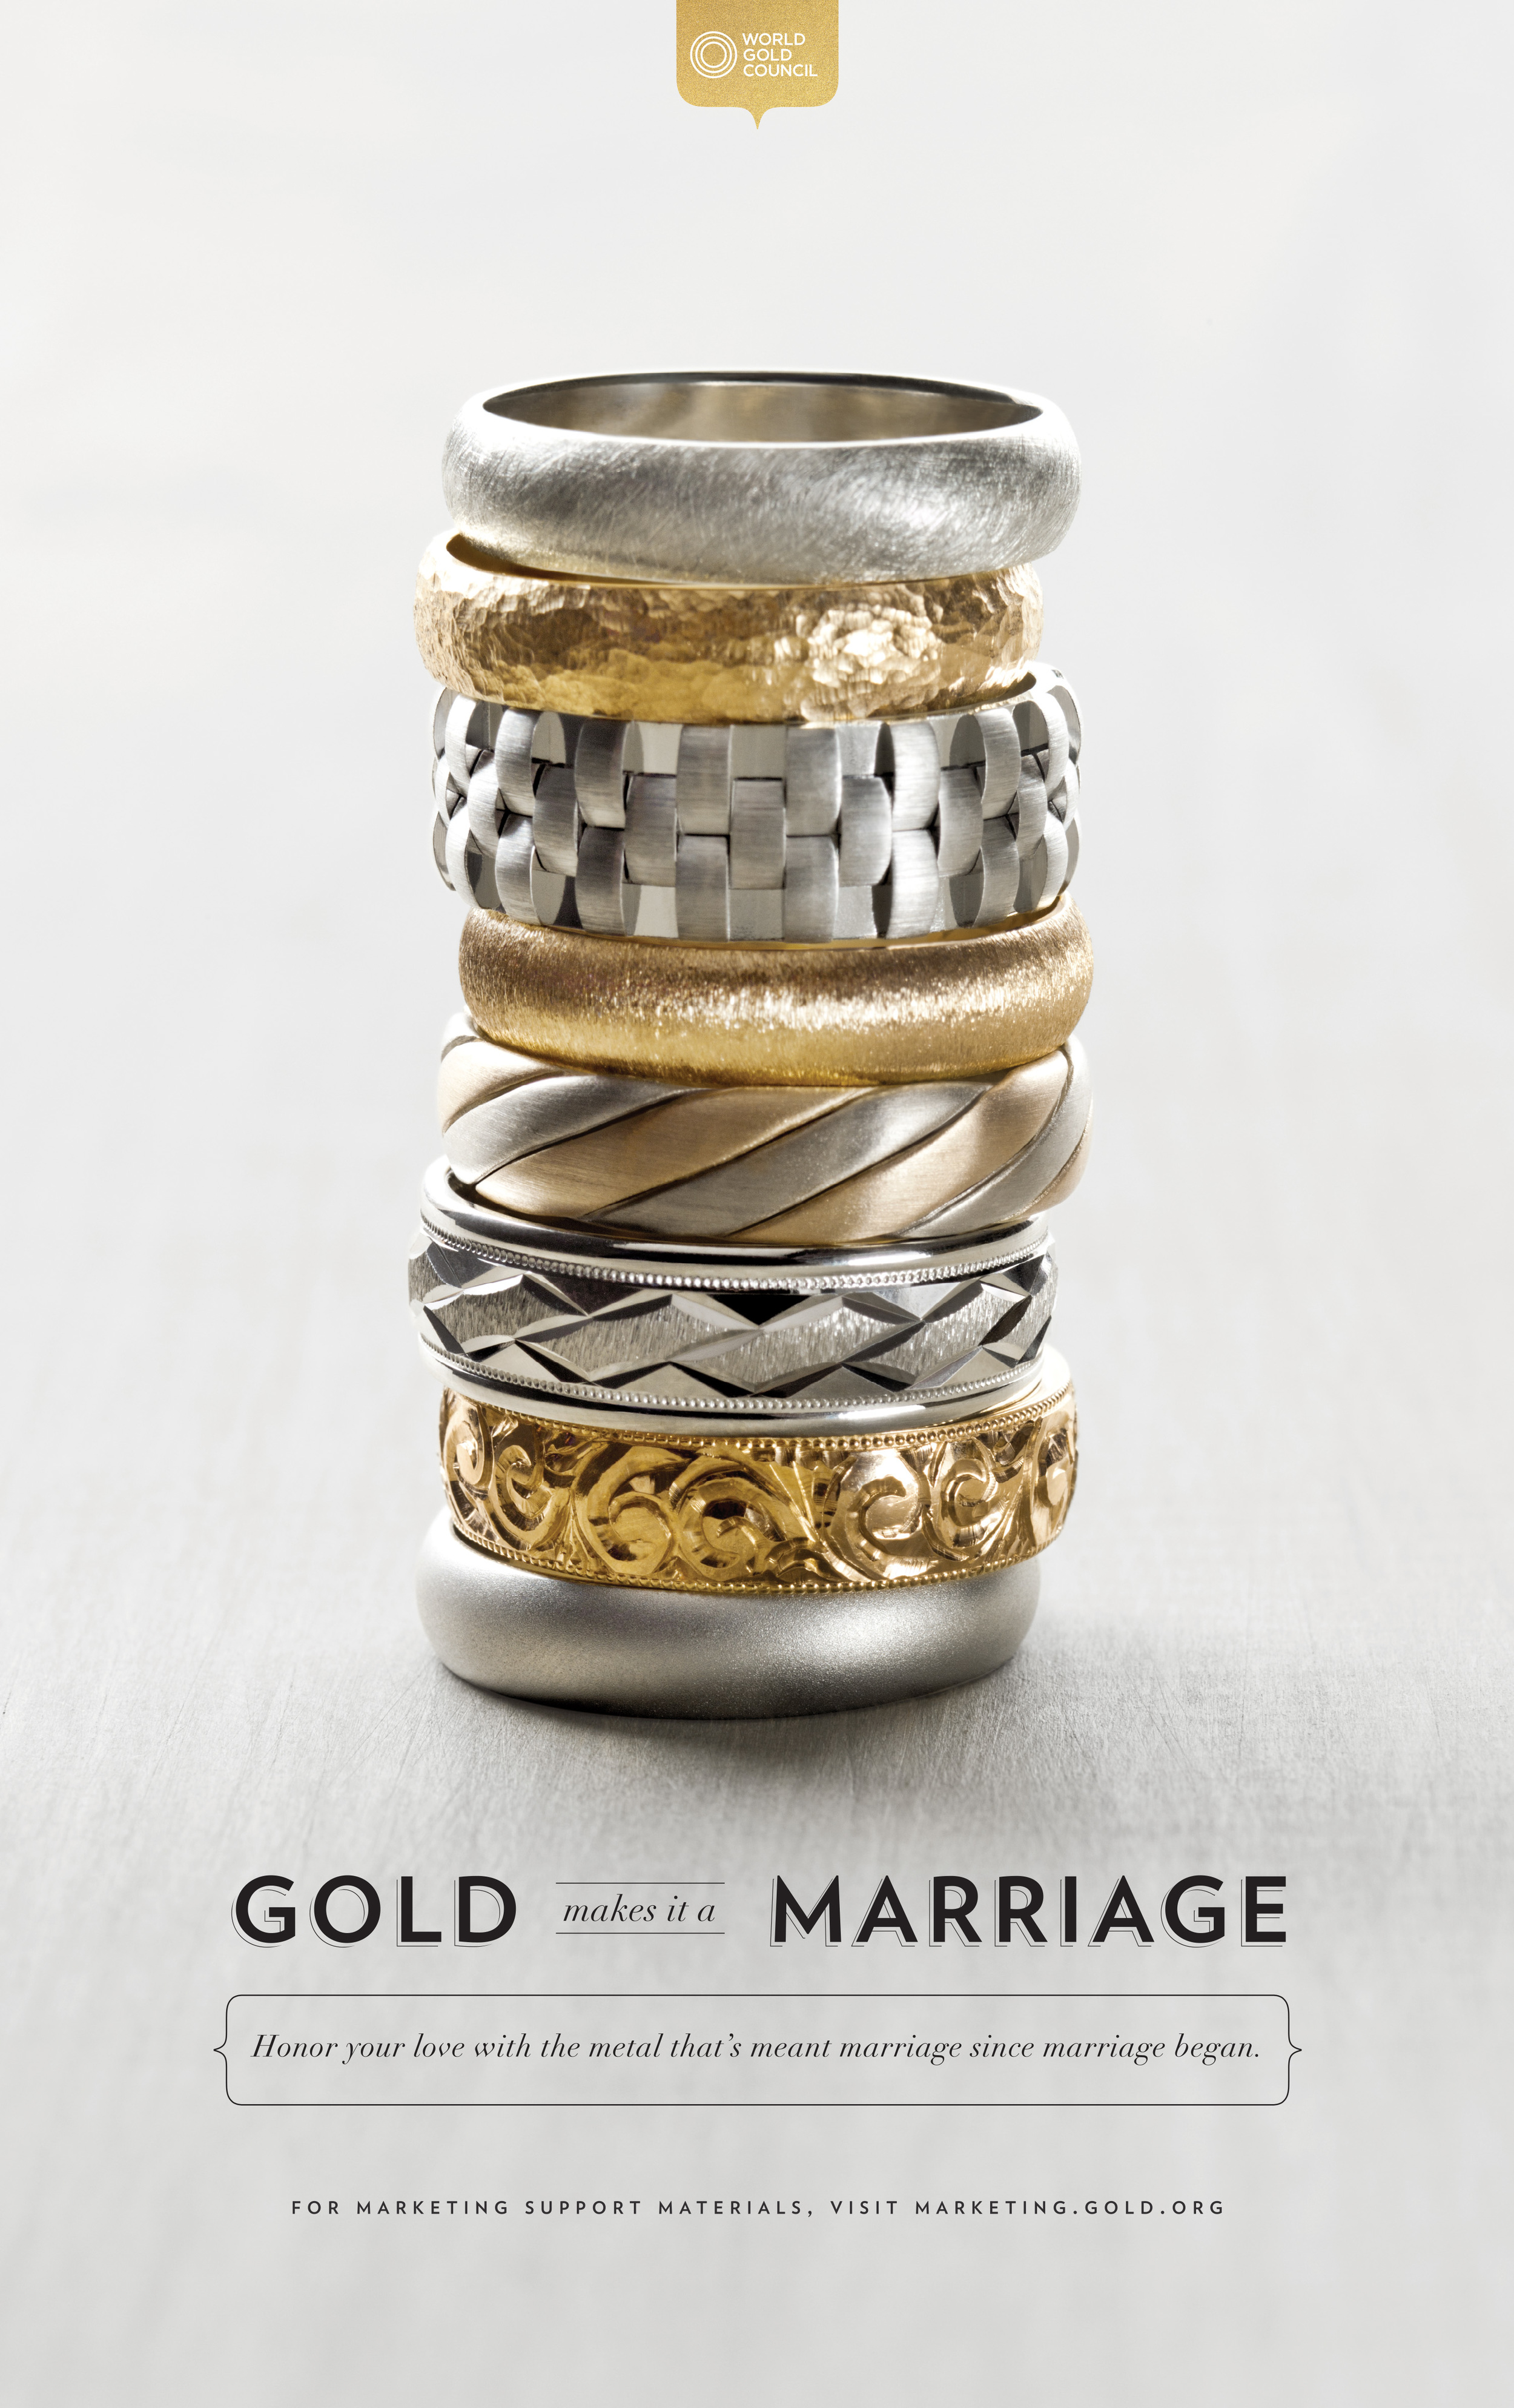 World Gold Council :: Gold Makes it a Marriage